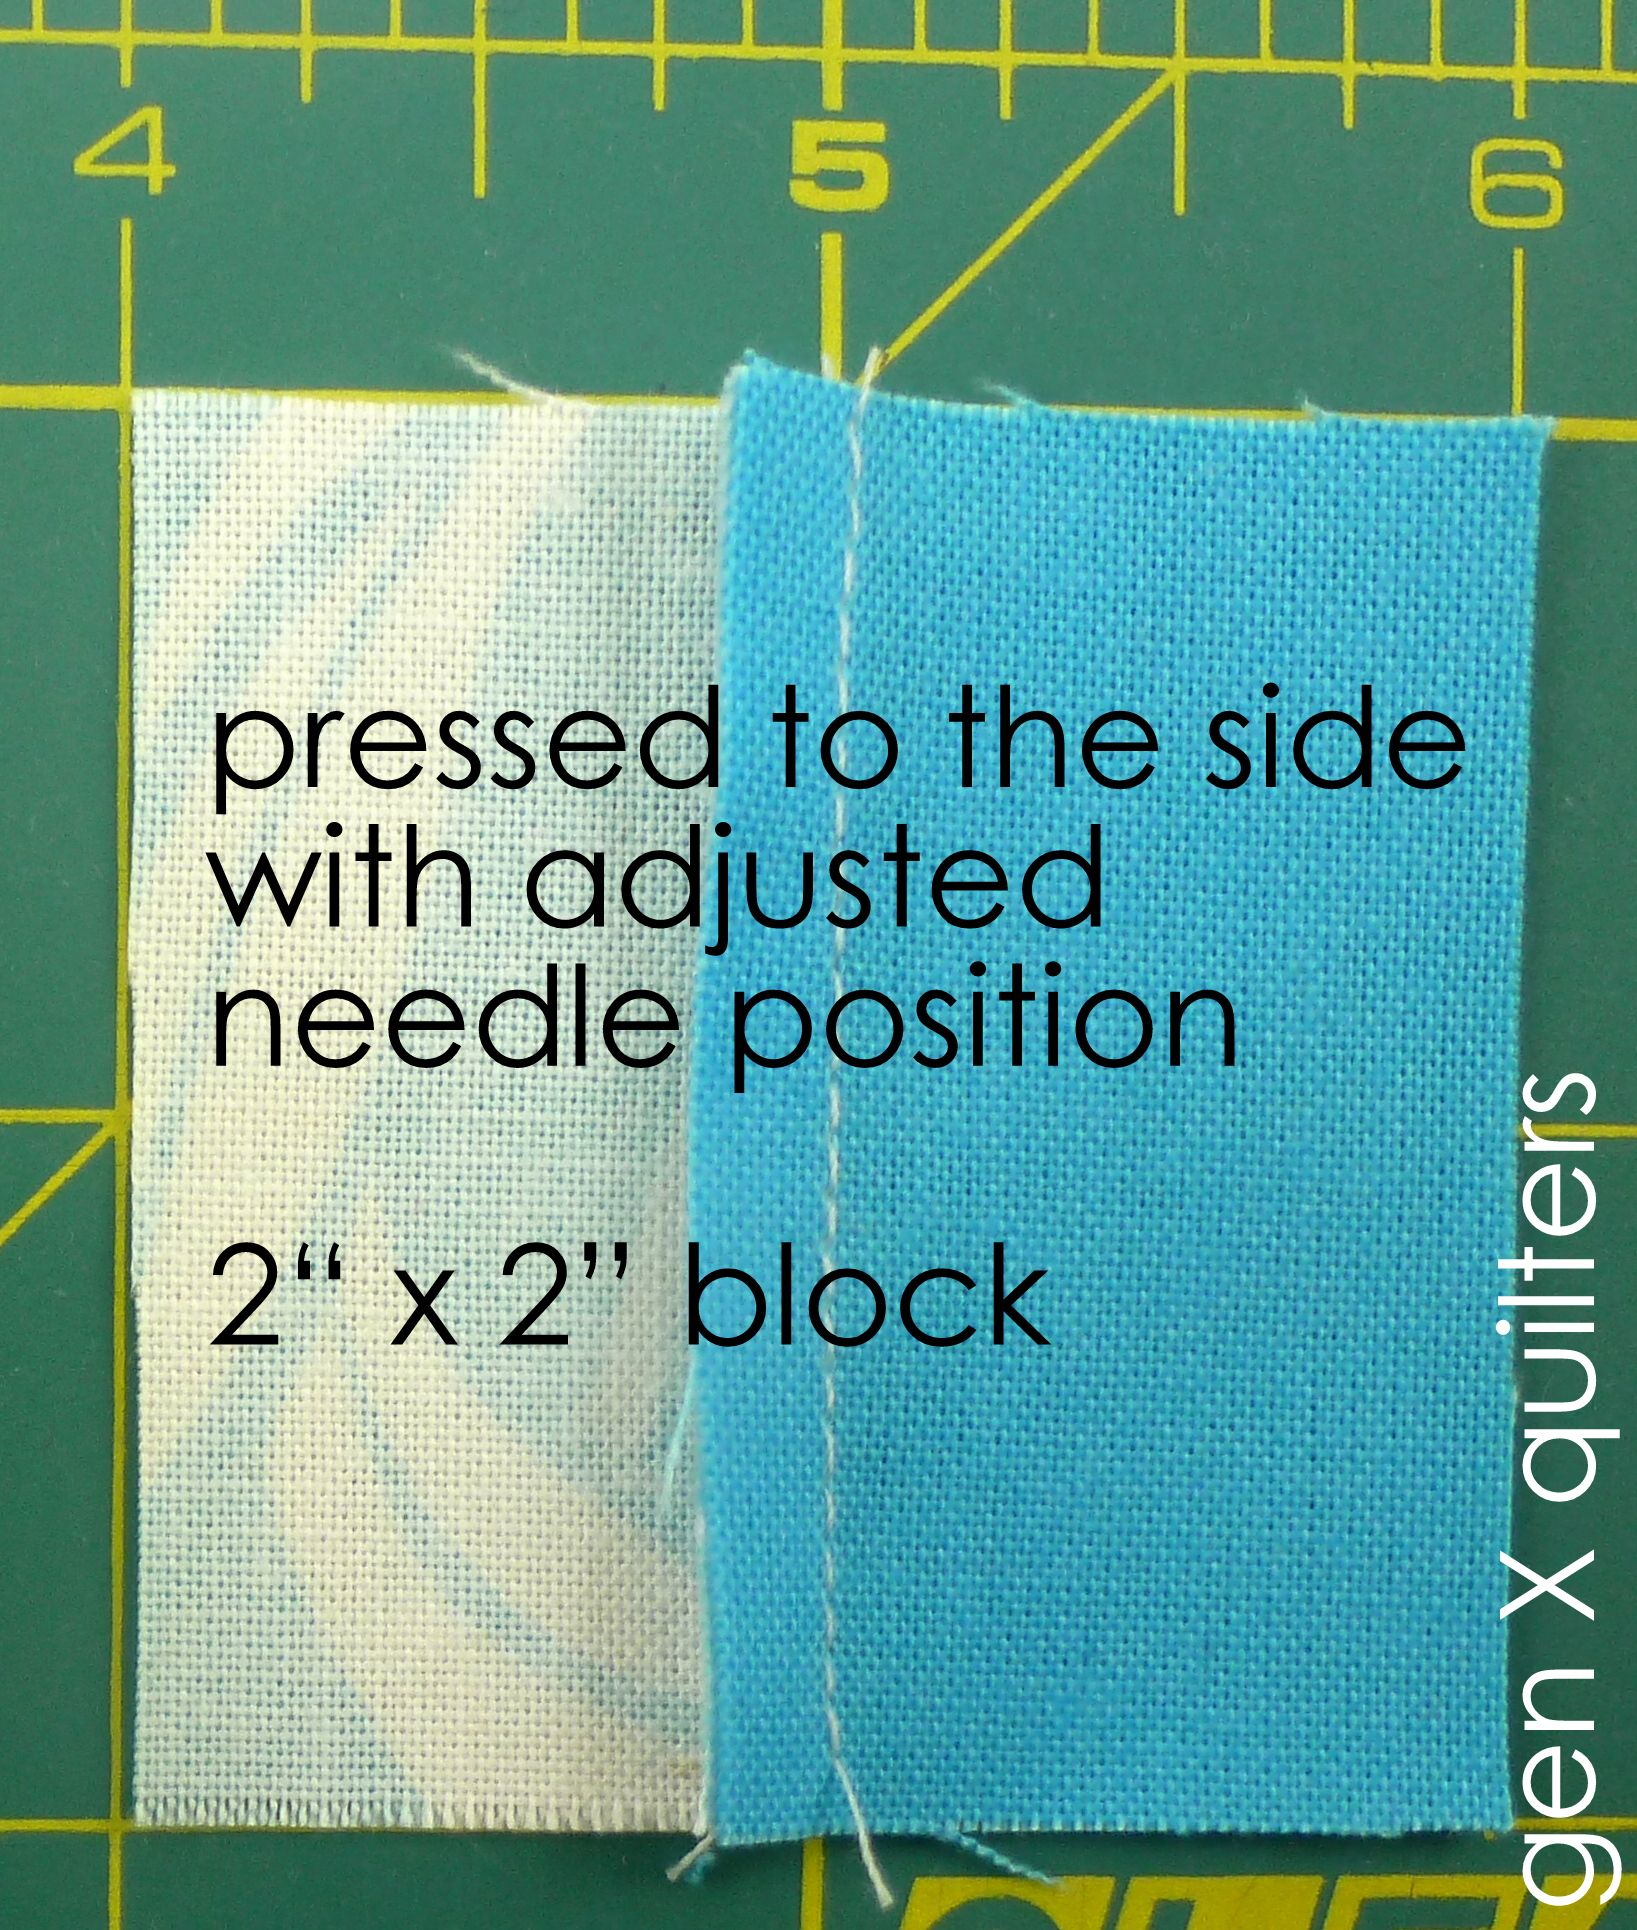 block with seam pressed to side with adjusted needle position